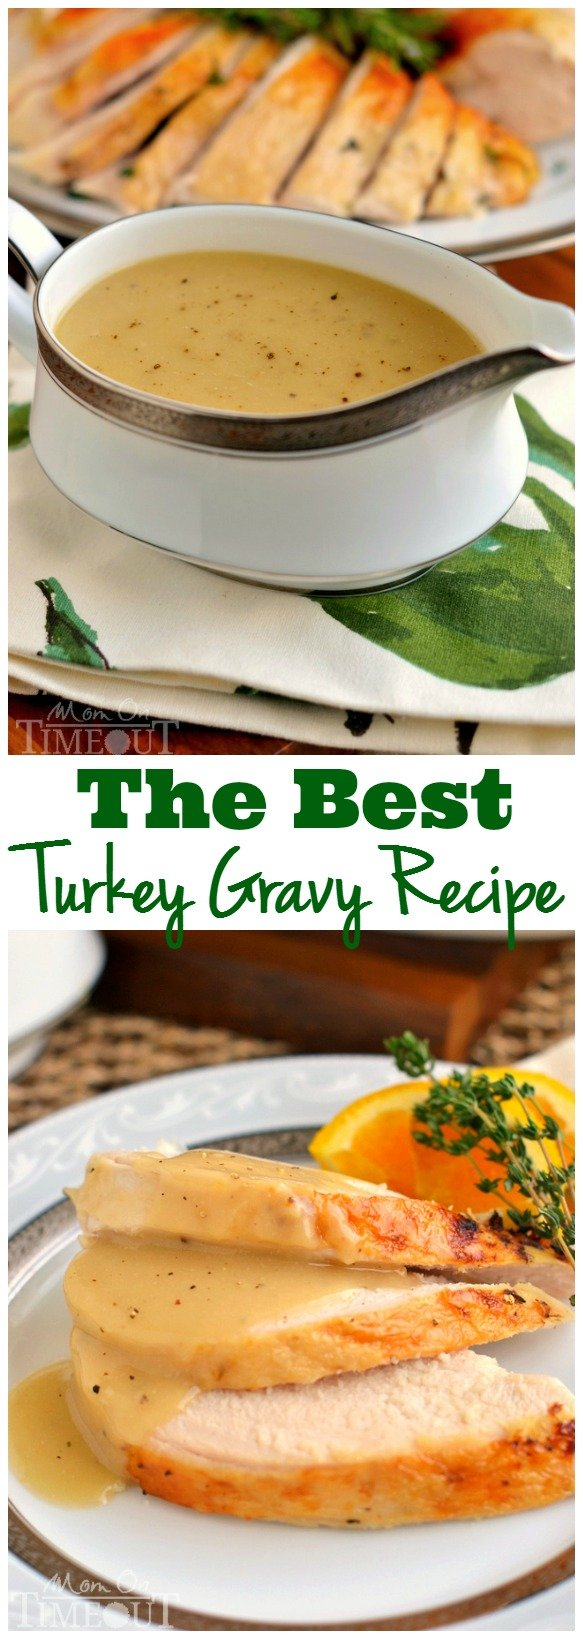 Silky smooth and perfectly rich, this really is the BEST Turkey Gravy recipe around! There's nothing better than topping creamy mashed potatoes with the most amazing turkey gravy and this recipe delivers - every single time. // Mom On Timeout #gravy #recipe #turkey #thanksgiving #Christmas #easy